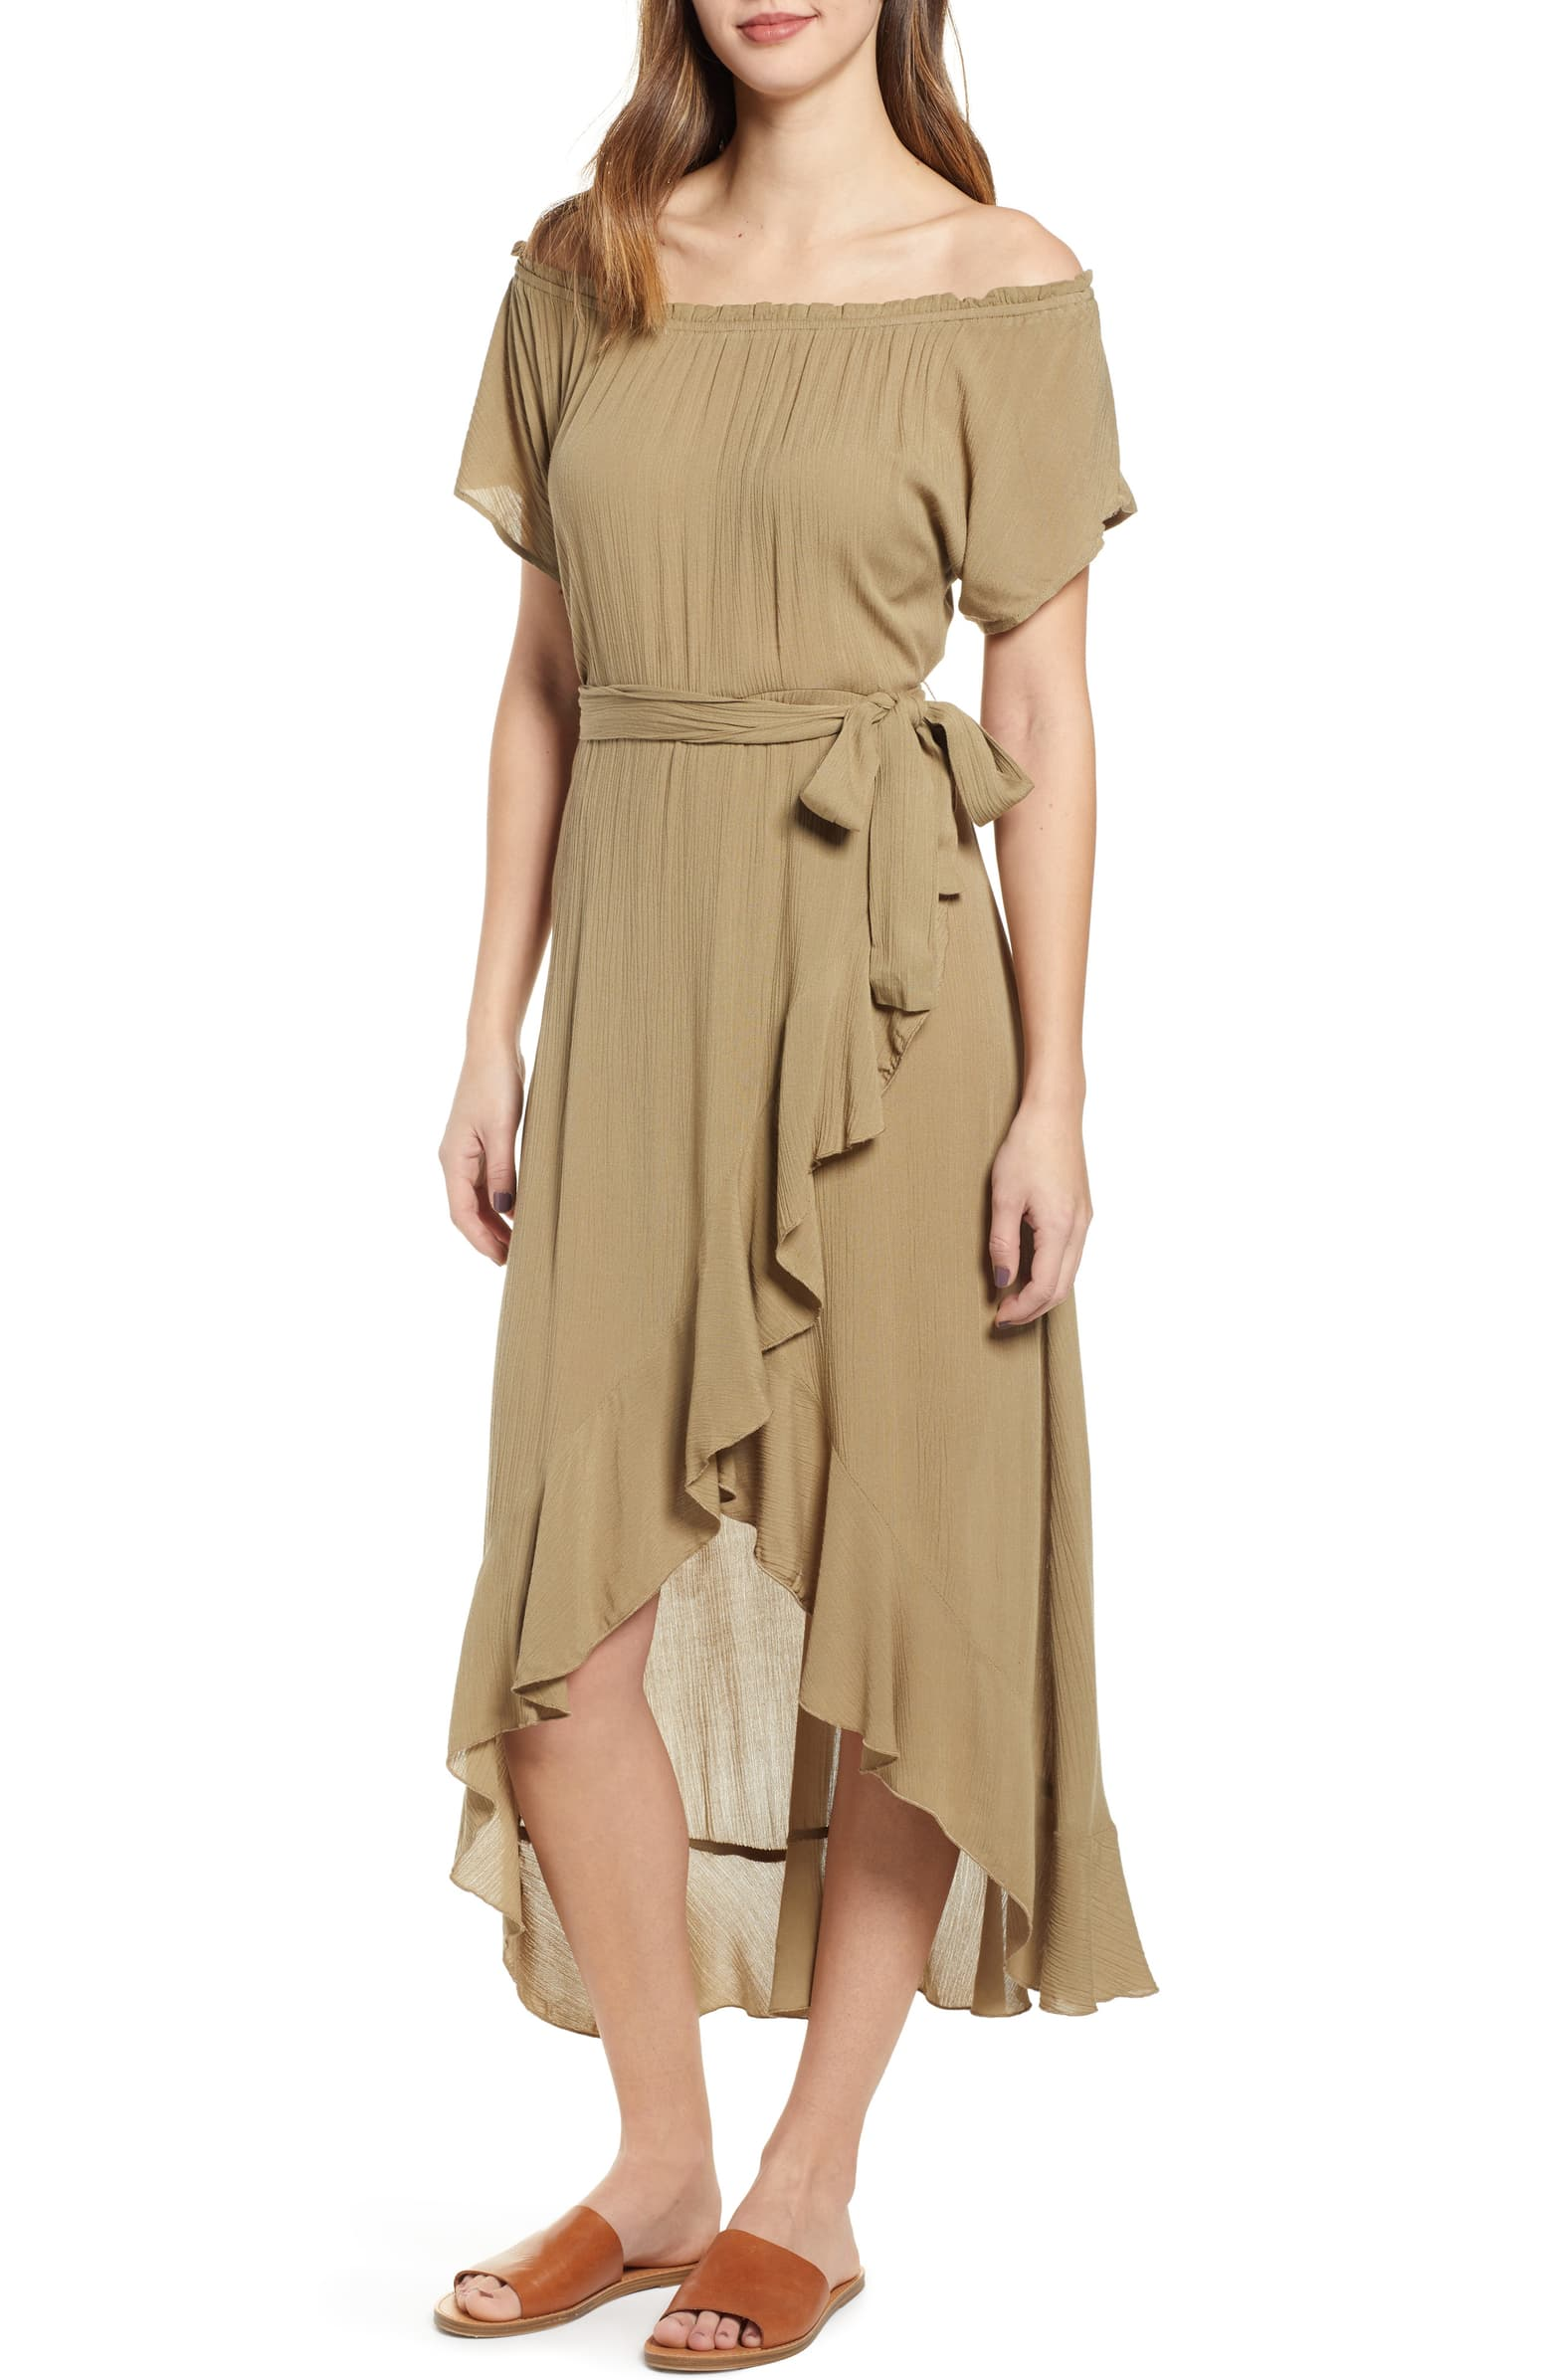 Not the exact dress I bought because mine has sold out, but had this been available when I was shopping for light, flowy dresses I would've had it in my cart right away!